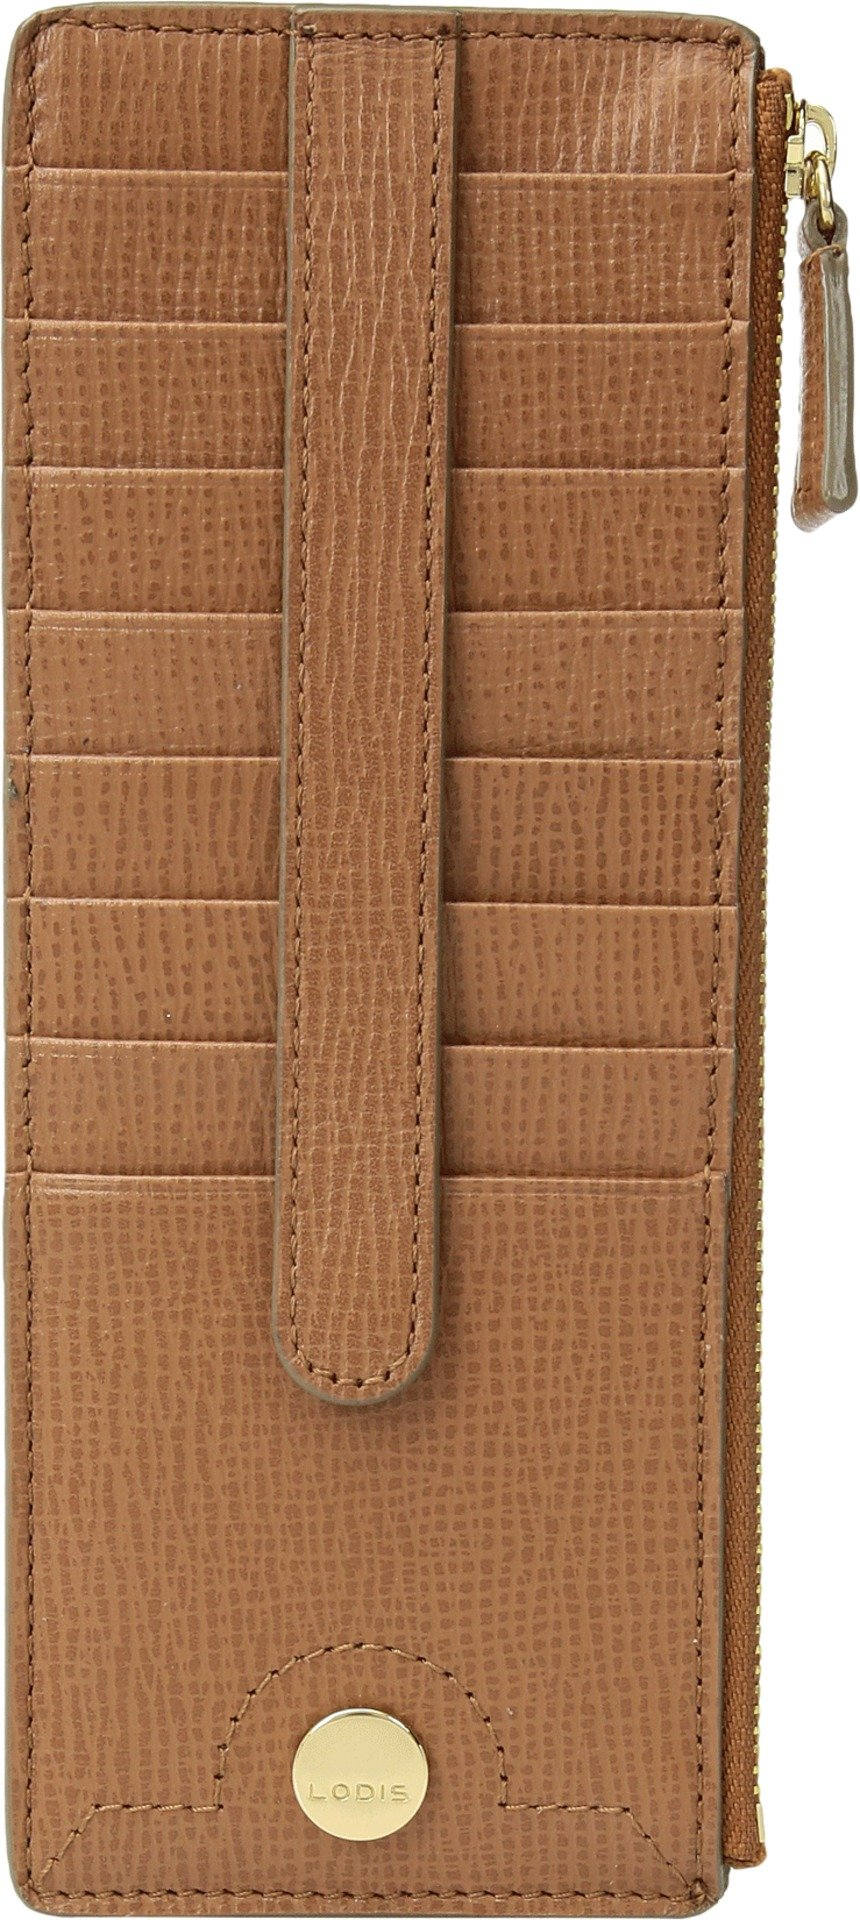 Lodis Women's Business Chic Rfid Credit Card Case with Zipper Pocket, Caramel, One Size